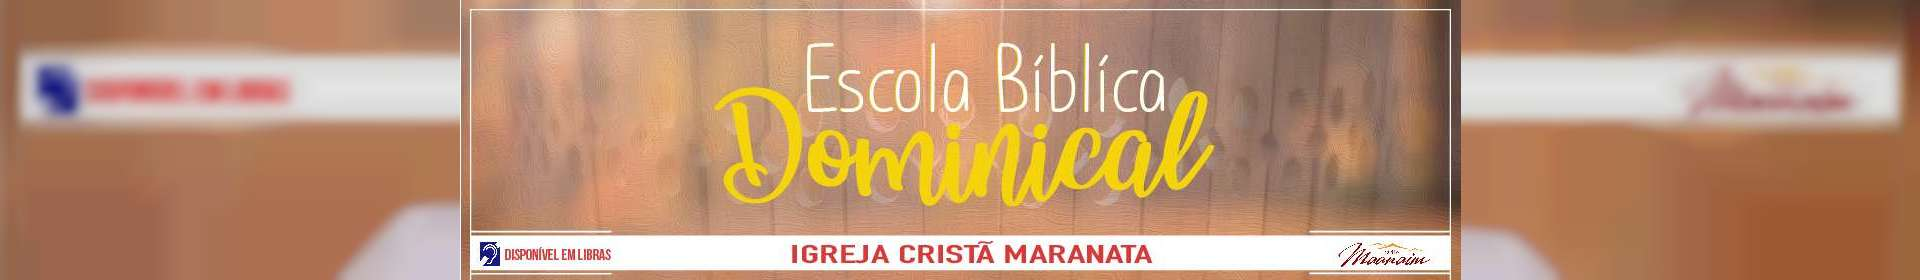 Escola Bíblica Dominical - 01/09/2019